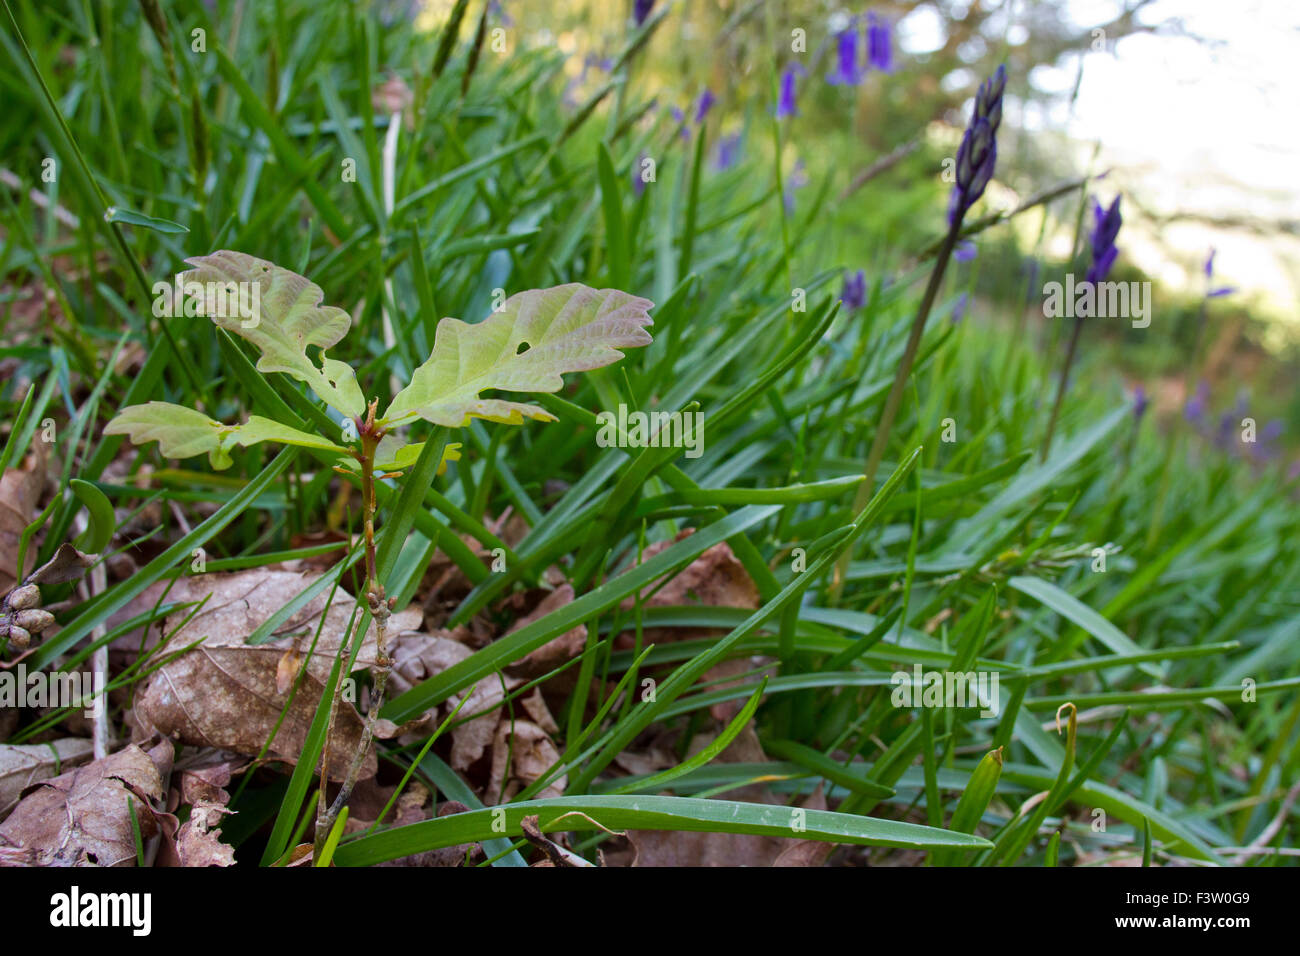 Sessile Oak (Quercus petraea) seedling growing amongst bluebells in woodland. Powys, Wales. May. - Stock Image